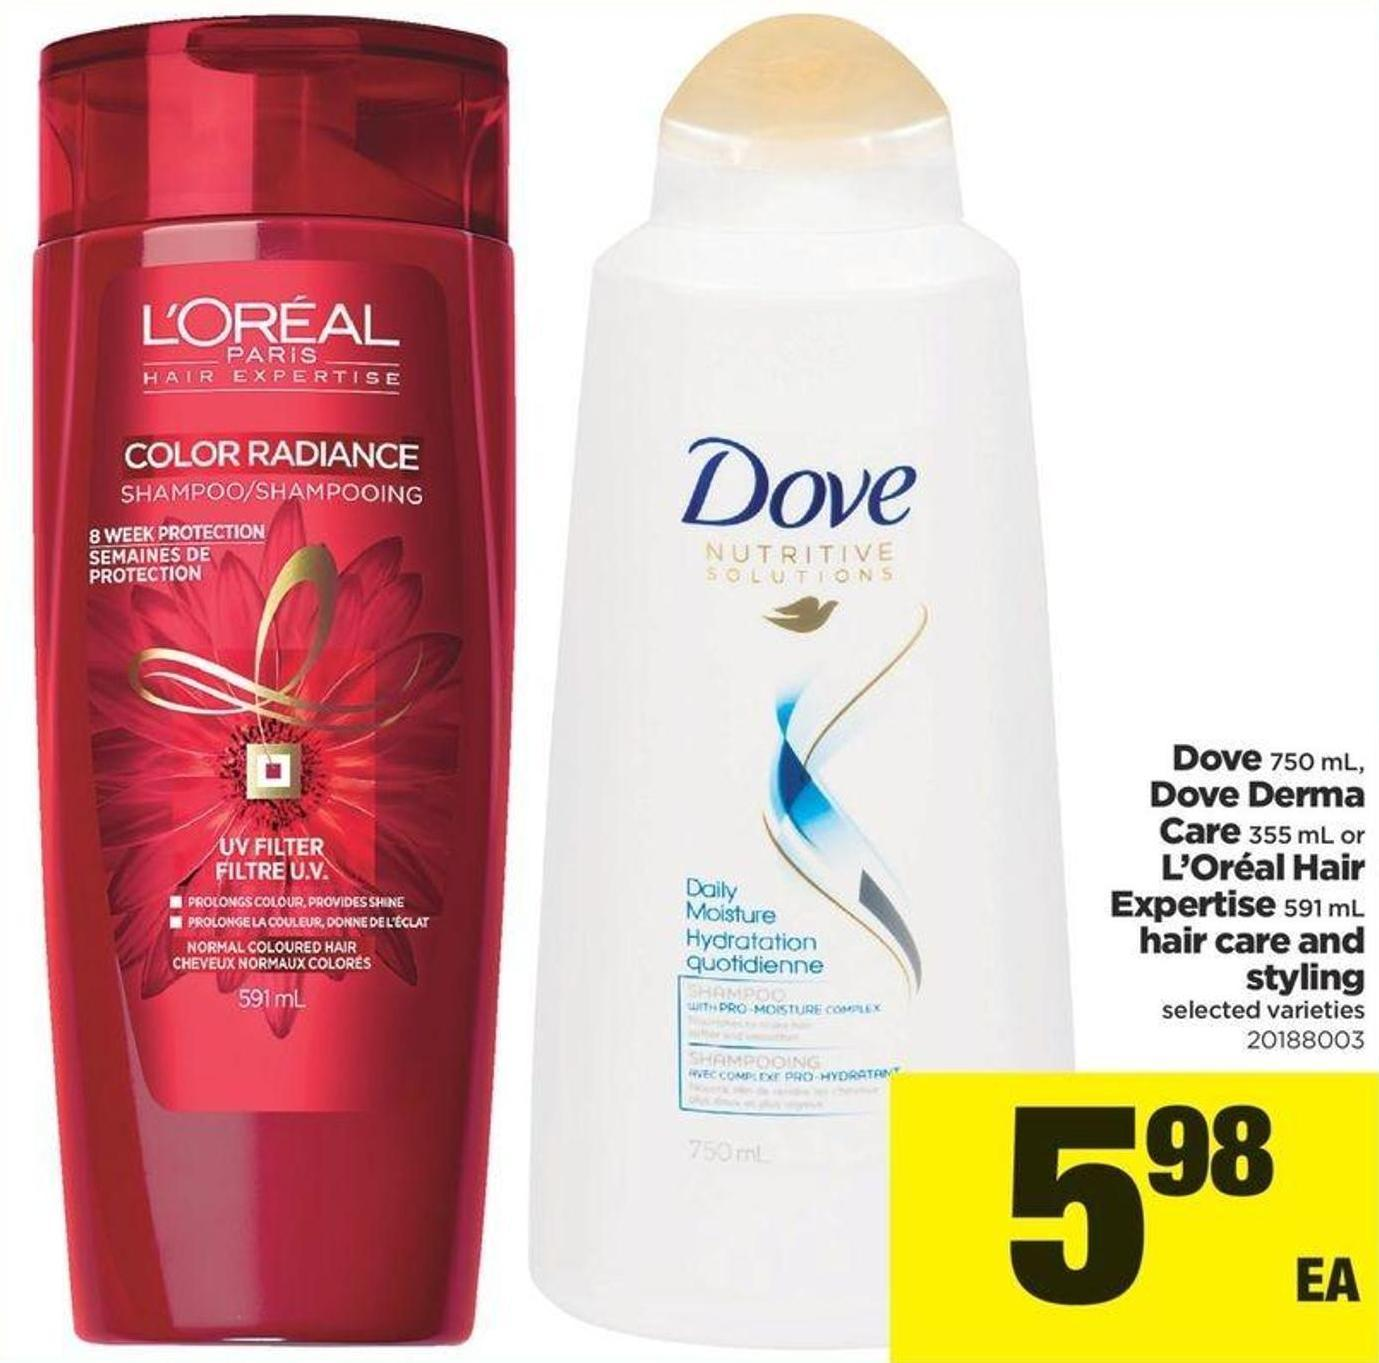 Dove - 750 Ml - Dove Derma Care - 355 Ml Or L'oréal Hair Expertise - 591 Ml Hair Care And Styling